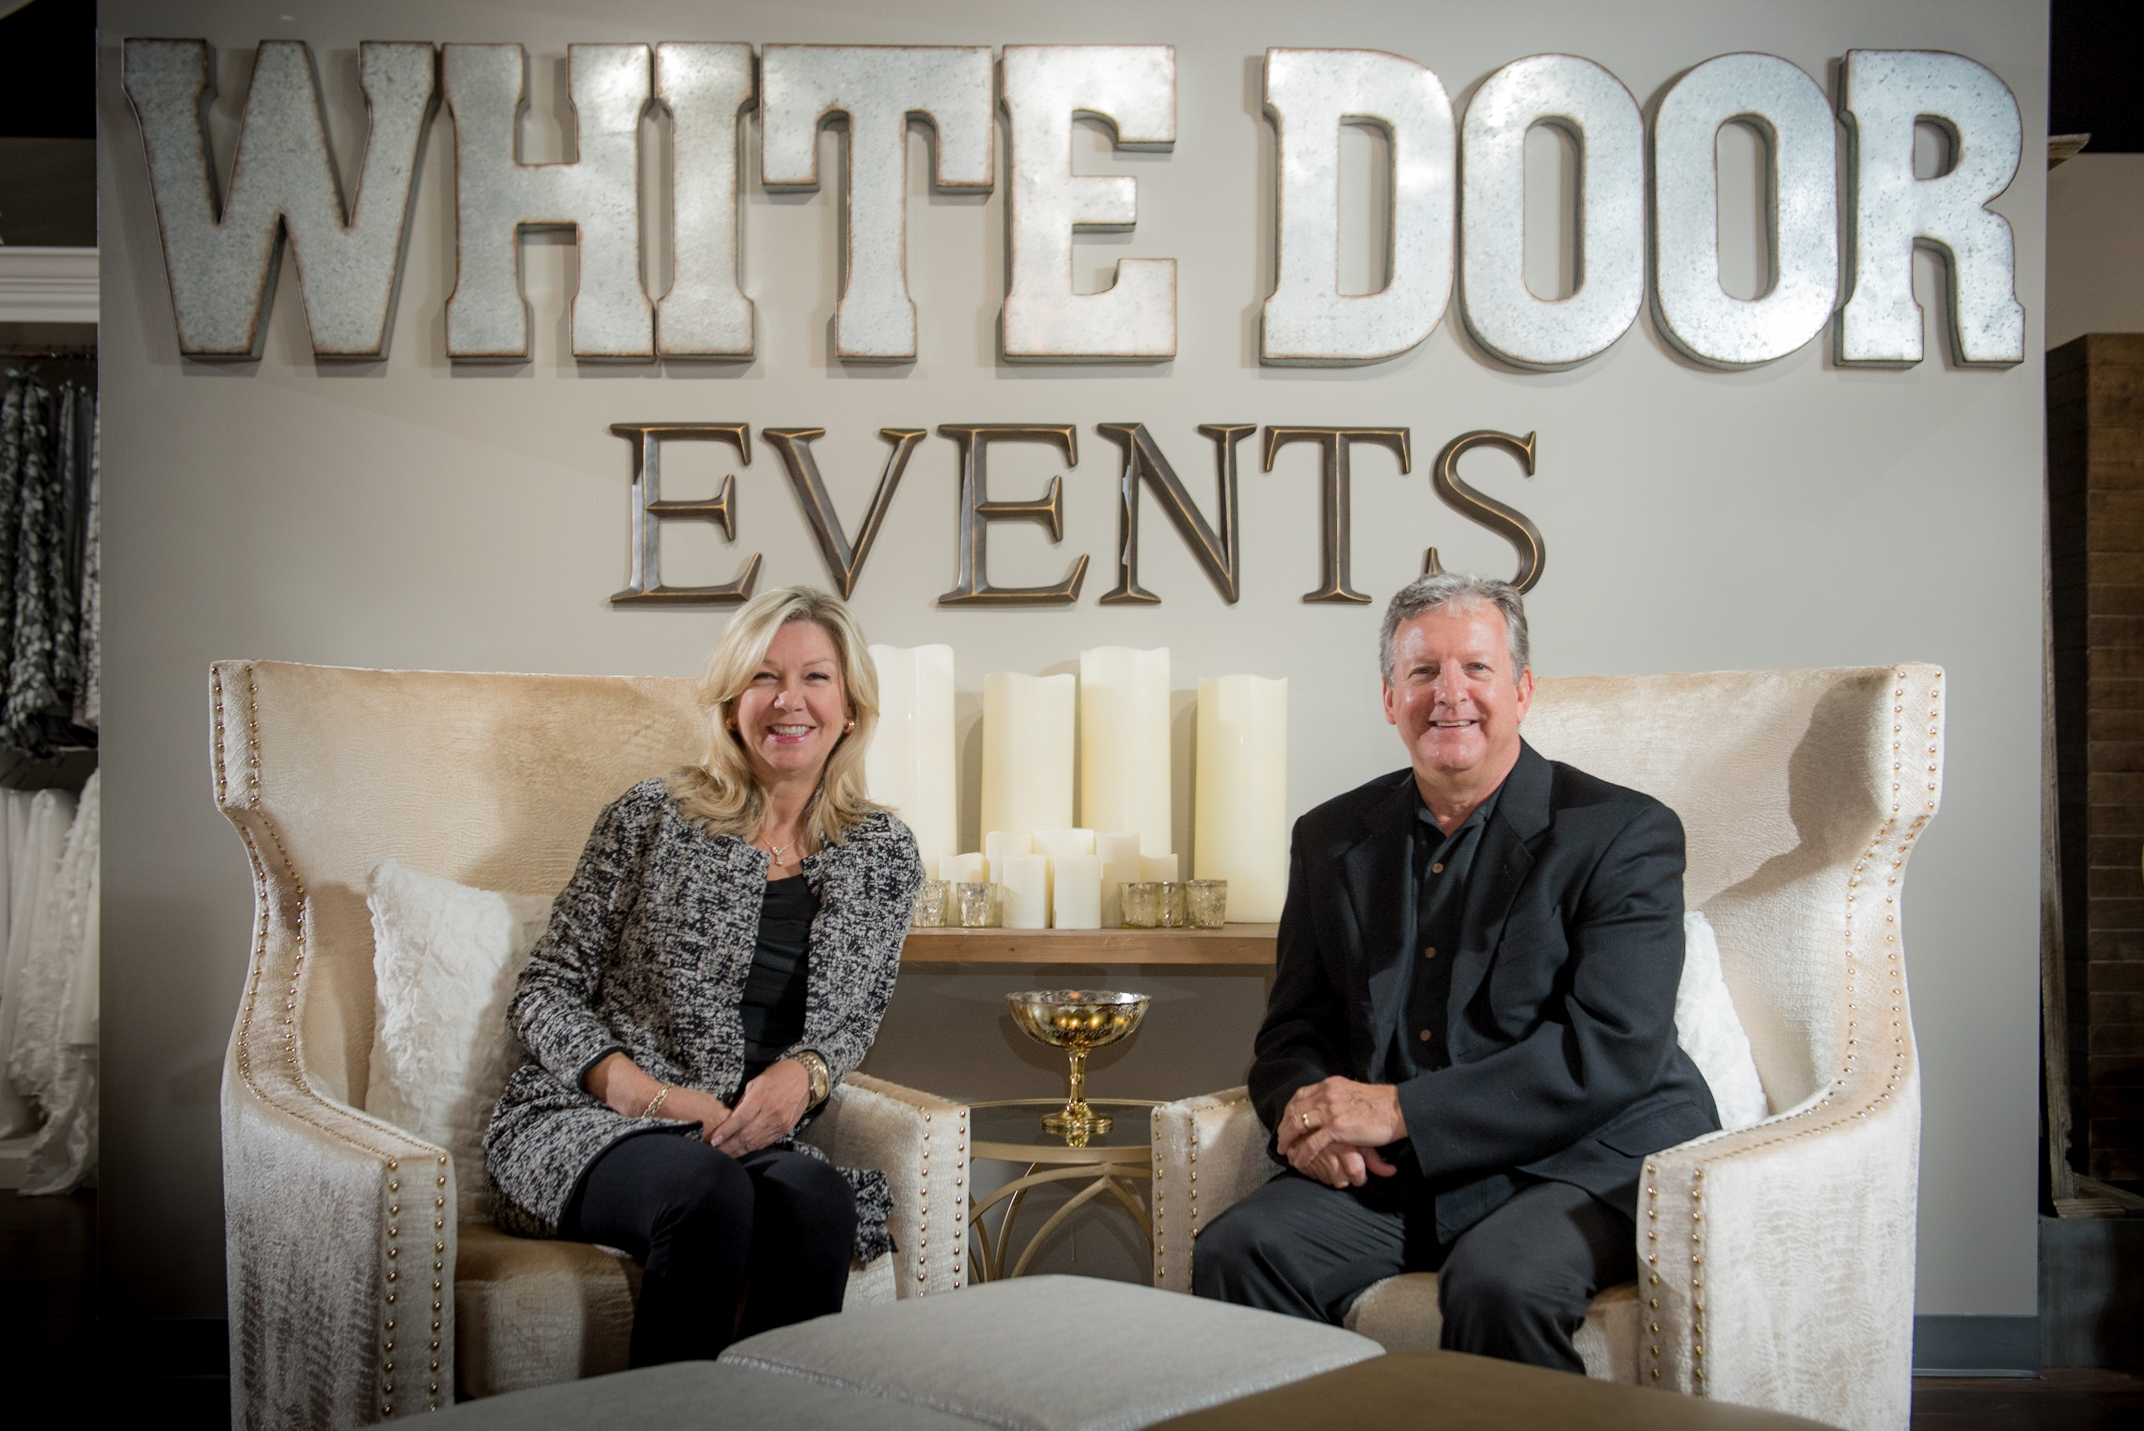 The founders and owners of White Door Events are no strangers to the event industry.  Stan and Beth White began their original company Grand Rental Station in early 1990 with the goal to bring event and party rental products to the Memphis region that were not available to the market at that time. The company soon picked up momentum as the demand grew, and quickly established its noticeable presence in the event business.  Over the next 15 years Grand Rental Station continued to flourish in the event rental industry as they assisted in over thousands of different events. Throughout the course of that time they would make three different facility moves, each to a larger space to accommodate the ever-growing product inventory. During the final move, the company was renamed Grand Events & Party Rentals.  In early 2005 Stan and Beth acquired Party Place based in Nashville, Tennessee that serviced many high profile clients and events. Grand Events & Party Rentals became one of the largest event rental companies in the nation after the acquisition with a total of over 160 employees.  In 2007 the Los Angeles-based Classic Party Rentals approached the company, and in mid 2007 Grand Events & Party Rentals was sold. Beth and Stan continued to manage the Memphis location, and in late 2013 together resigned after 25 years of servicing thousands of events and collecting just as many memories.  After taking time to refresh, their passion is rejuvenated and now wholly focused on building a creative and progressive event rental company, White Door Events.  The name White Door Events was chosen to identify them and at the same time to be inviting. Their goals & desires have always been to listen, to serve and to help customers create the perfect event. They and their team feel all customers and vendors are family because the event industry is a lifestyle and they get to work with many great and passionate people every day!